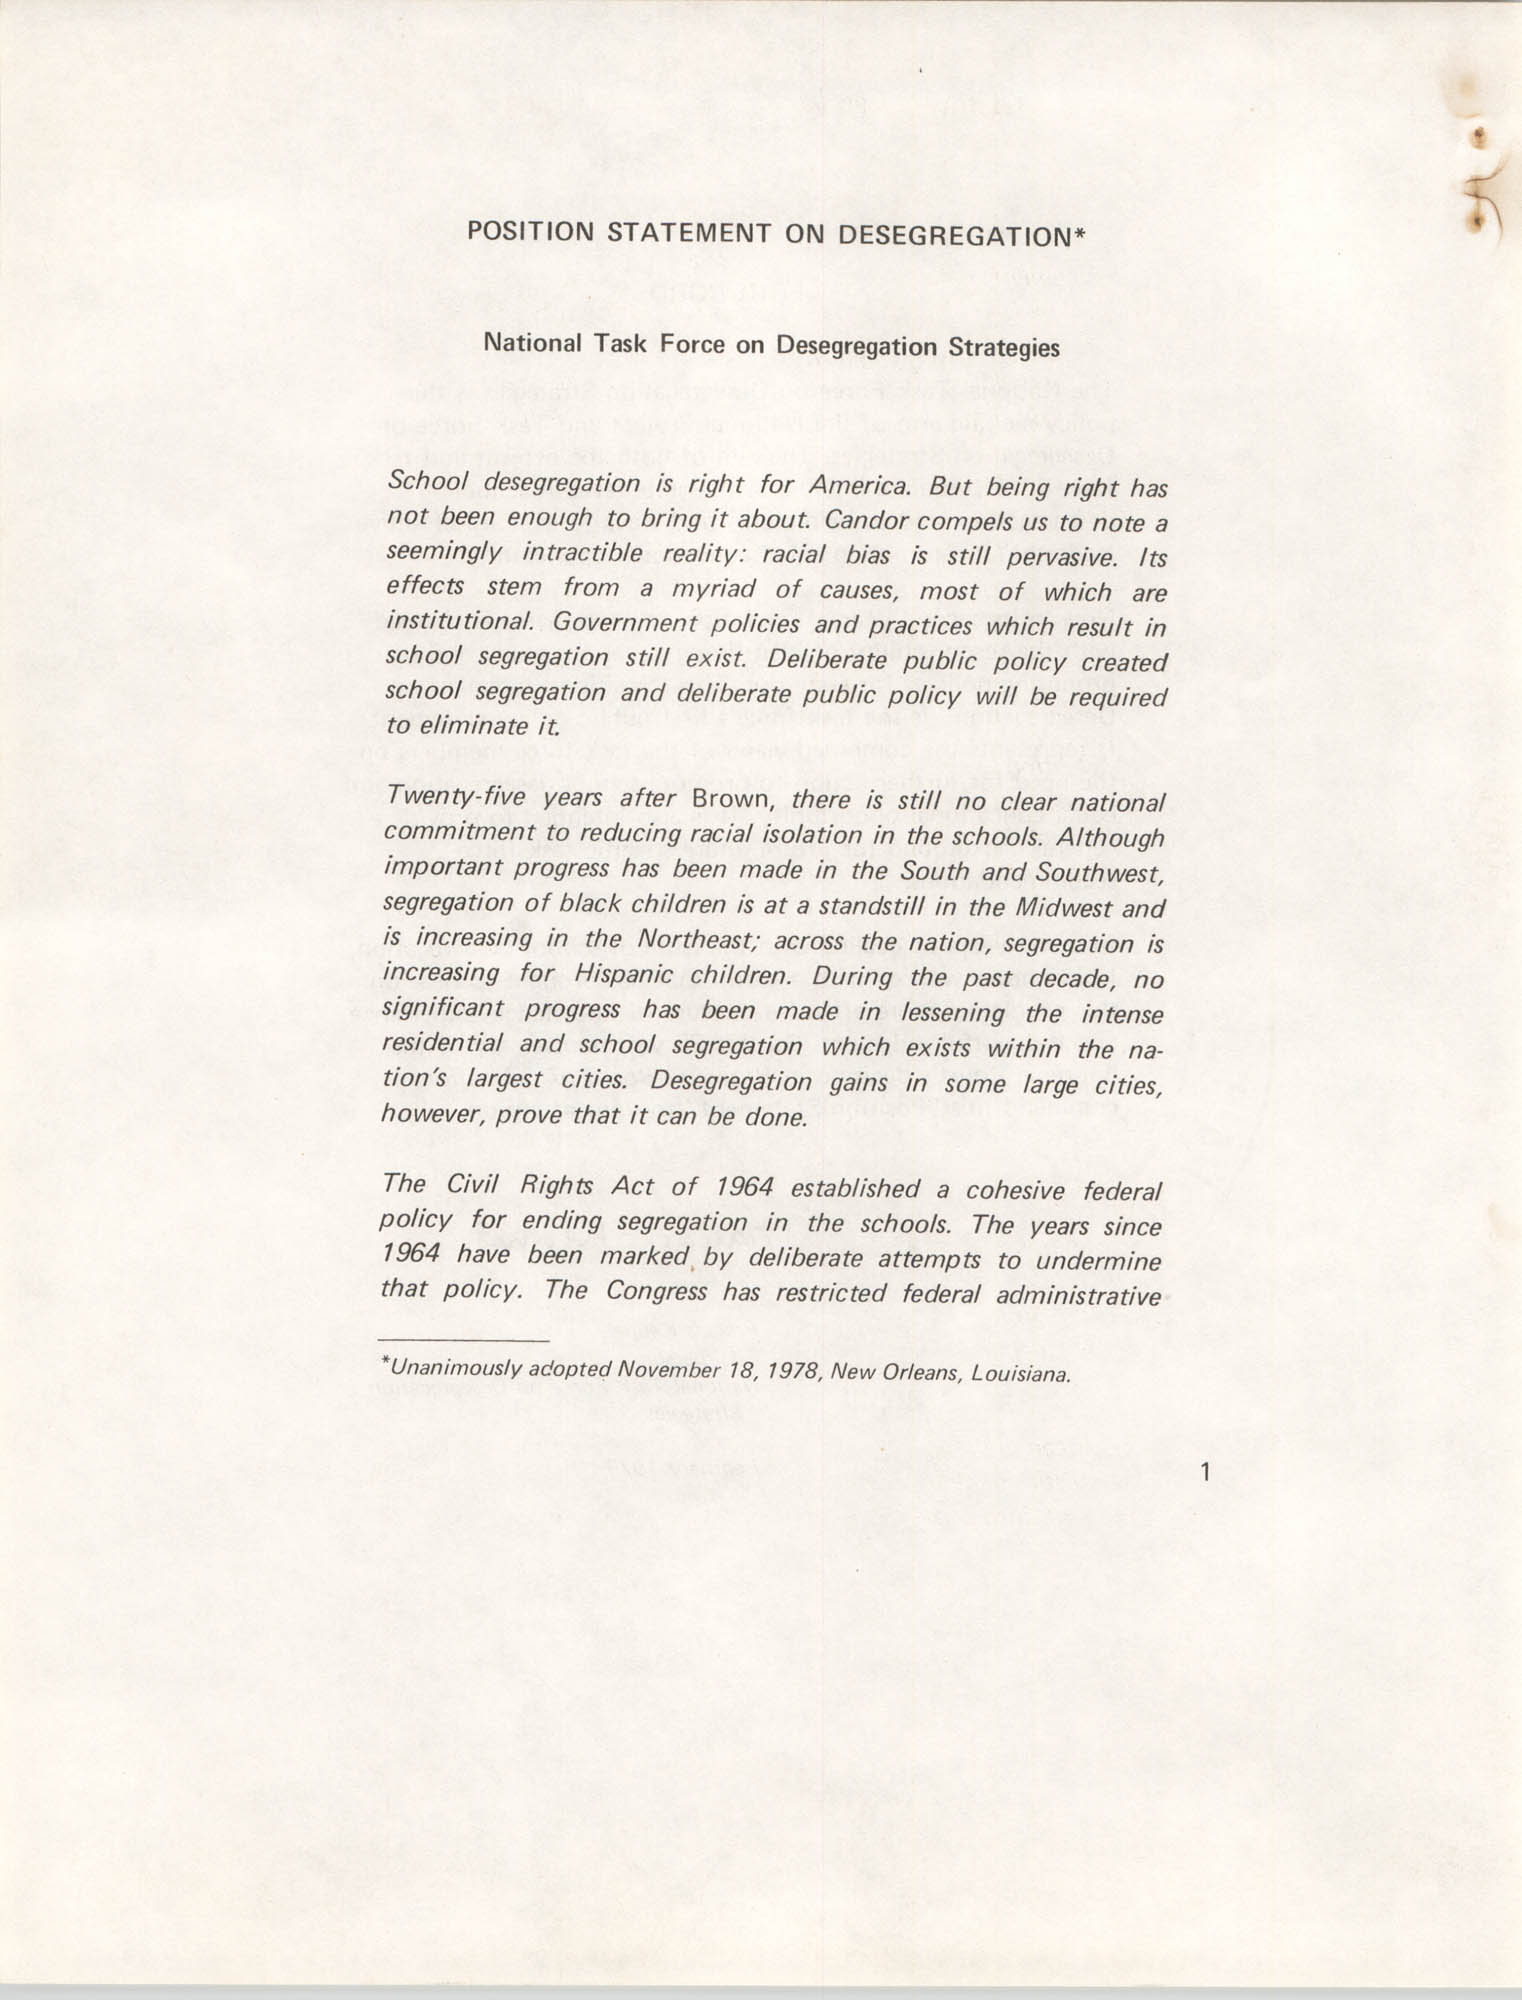 Position Statement on Desegregation, National Task Force on Desegregation Strategies, Page 1